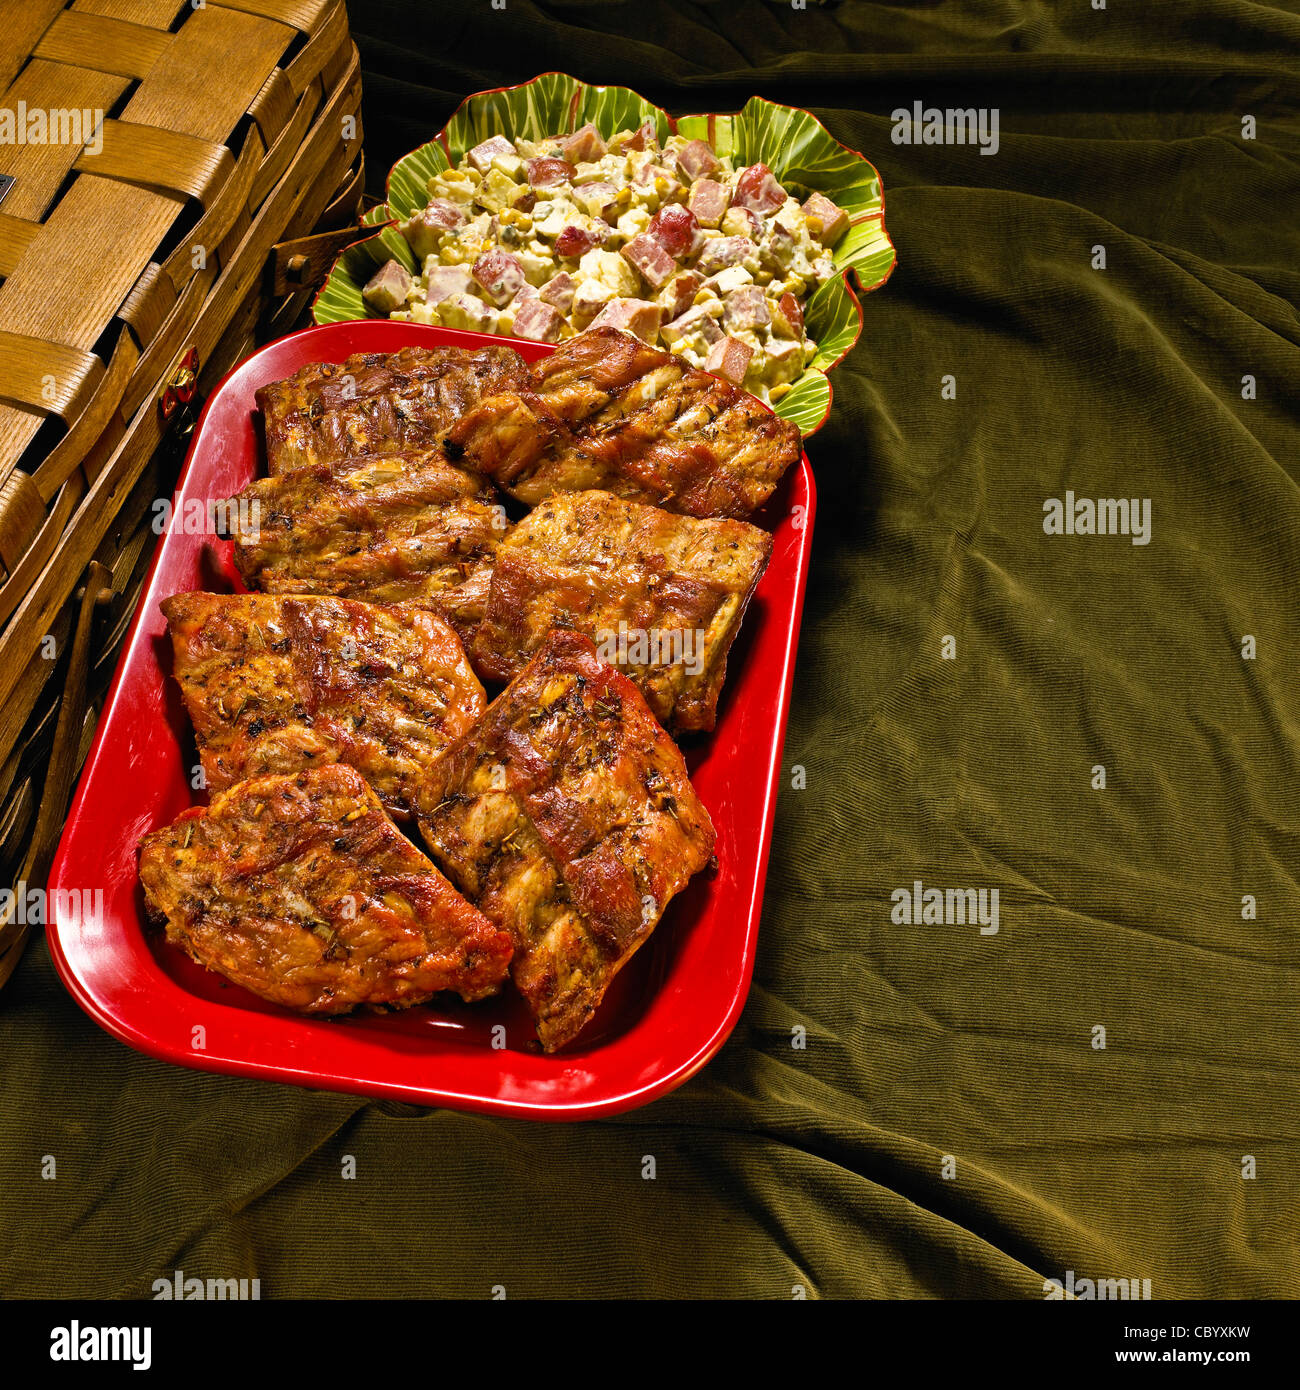 Country kitchen farm recipes, Dez's Puerto Rican potato salad, Greek spareribs  Meaat and vegetables. Stock Photo